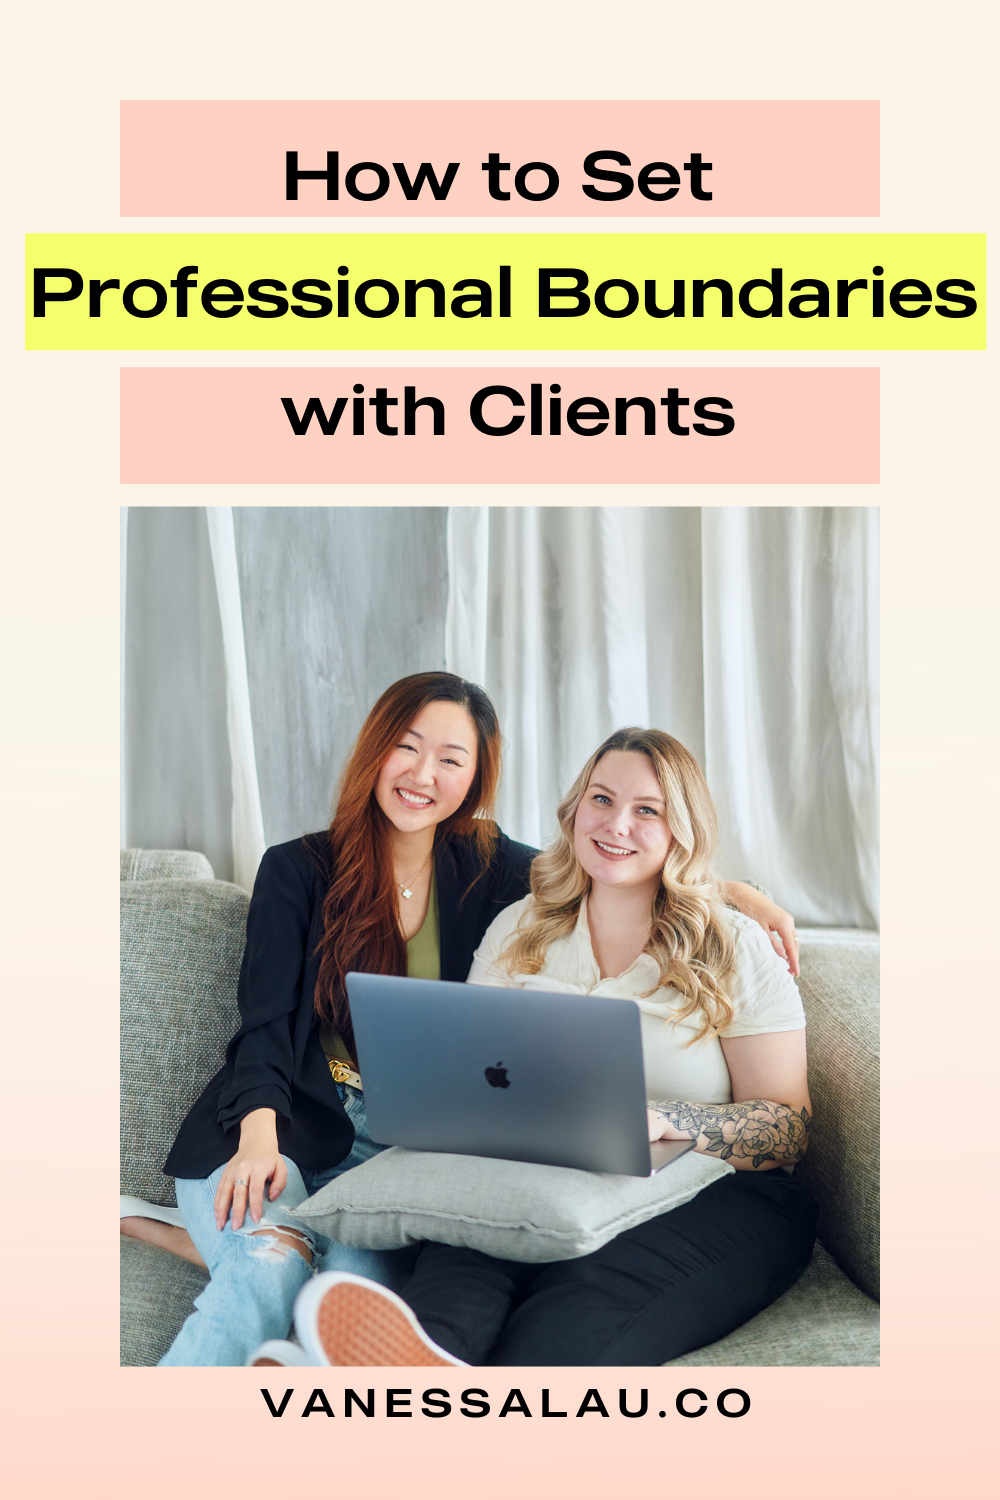 How to Set Professional Boundaries with Clients